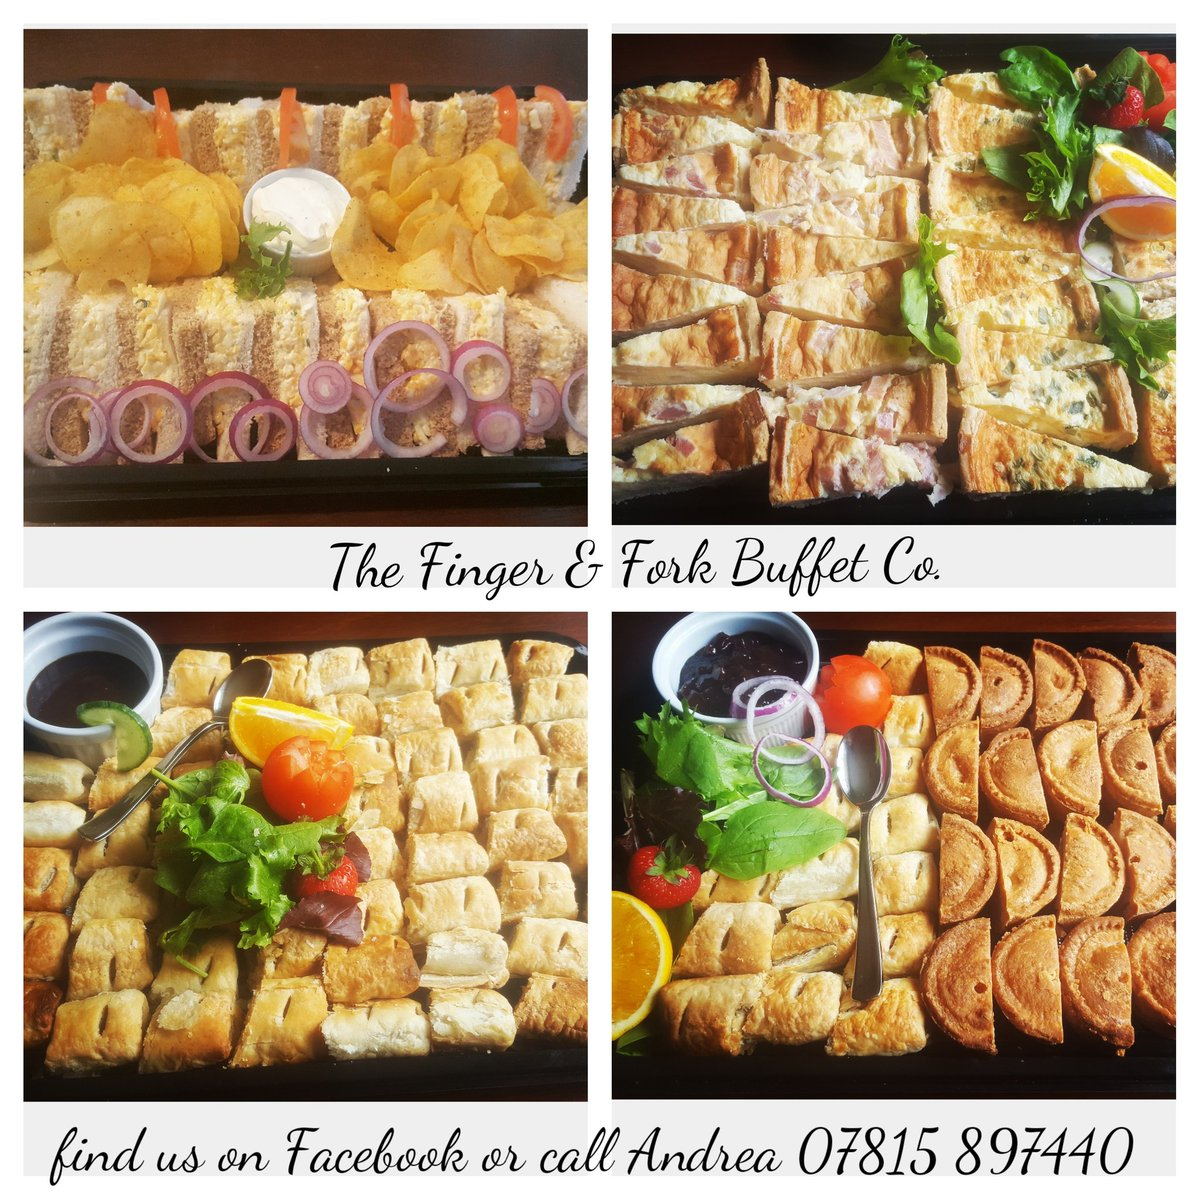 Looking for #eventcatering #partybuffets #buffetfood ? Contact us today to discuss. #bradford #keighley #haworth #halifax #leeds #colne<br>http://pic.twitter.com/jFTmKpexiy